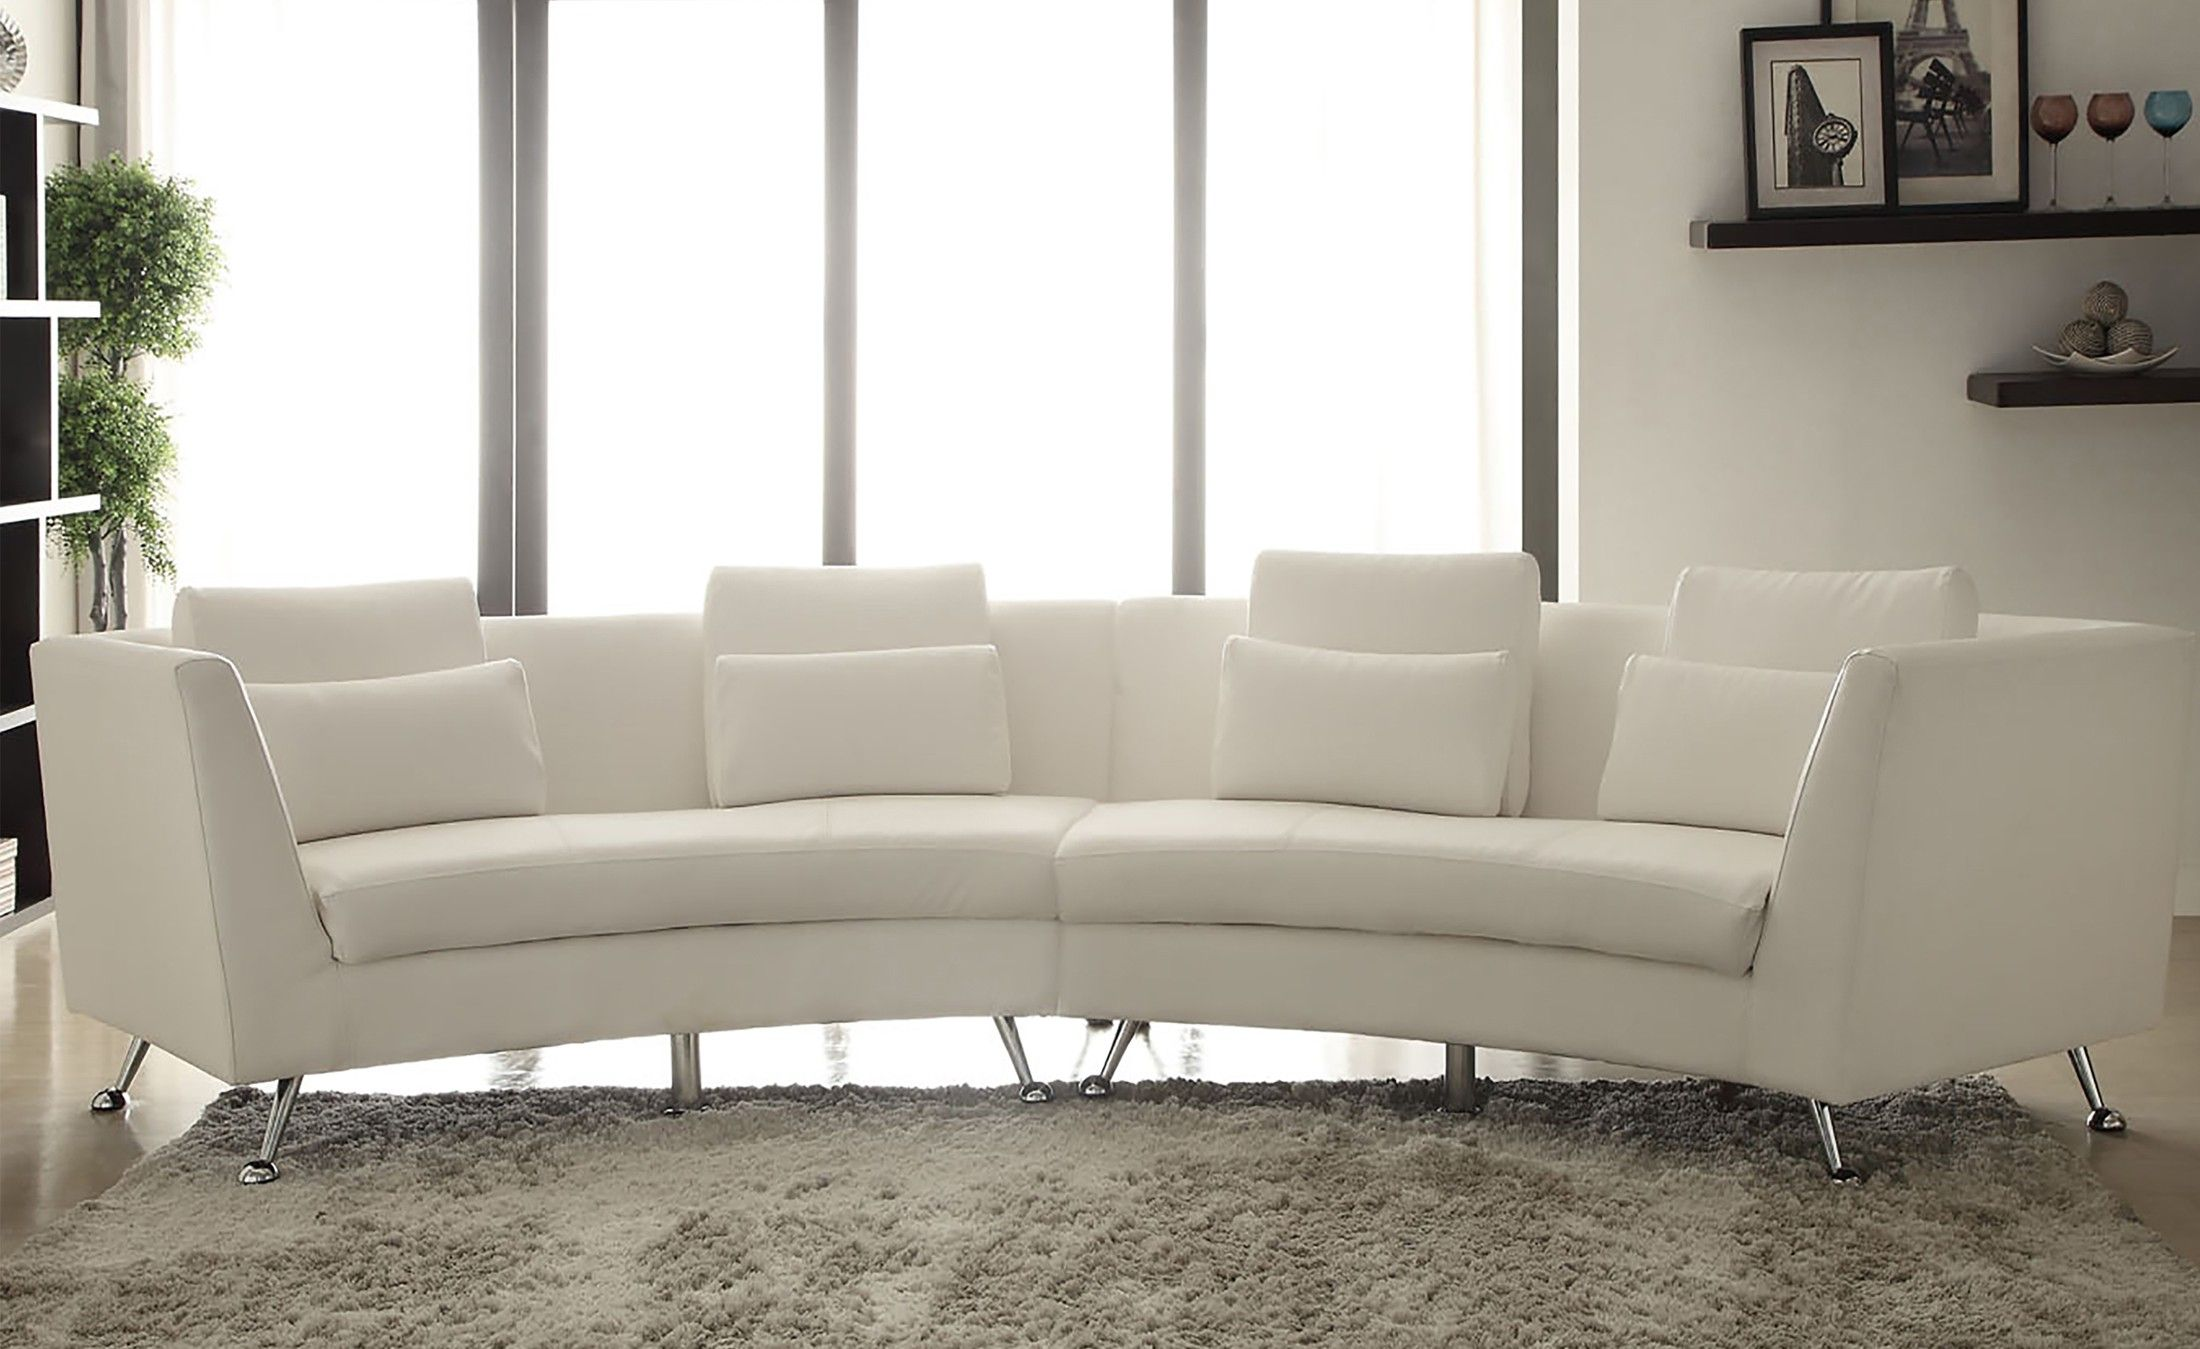 ac pacific jagger symmetrical power recline sectional sofa set rh pinterest com